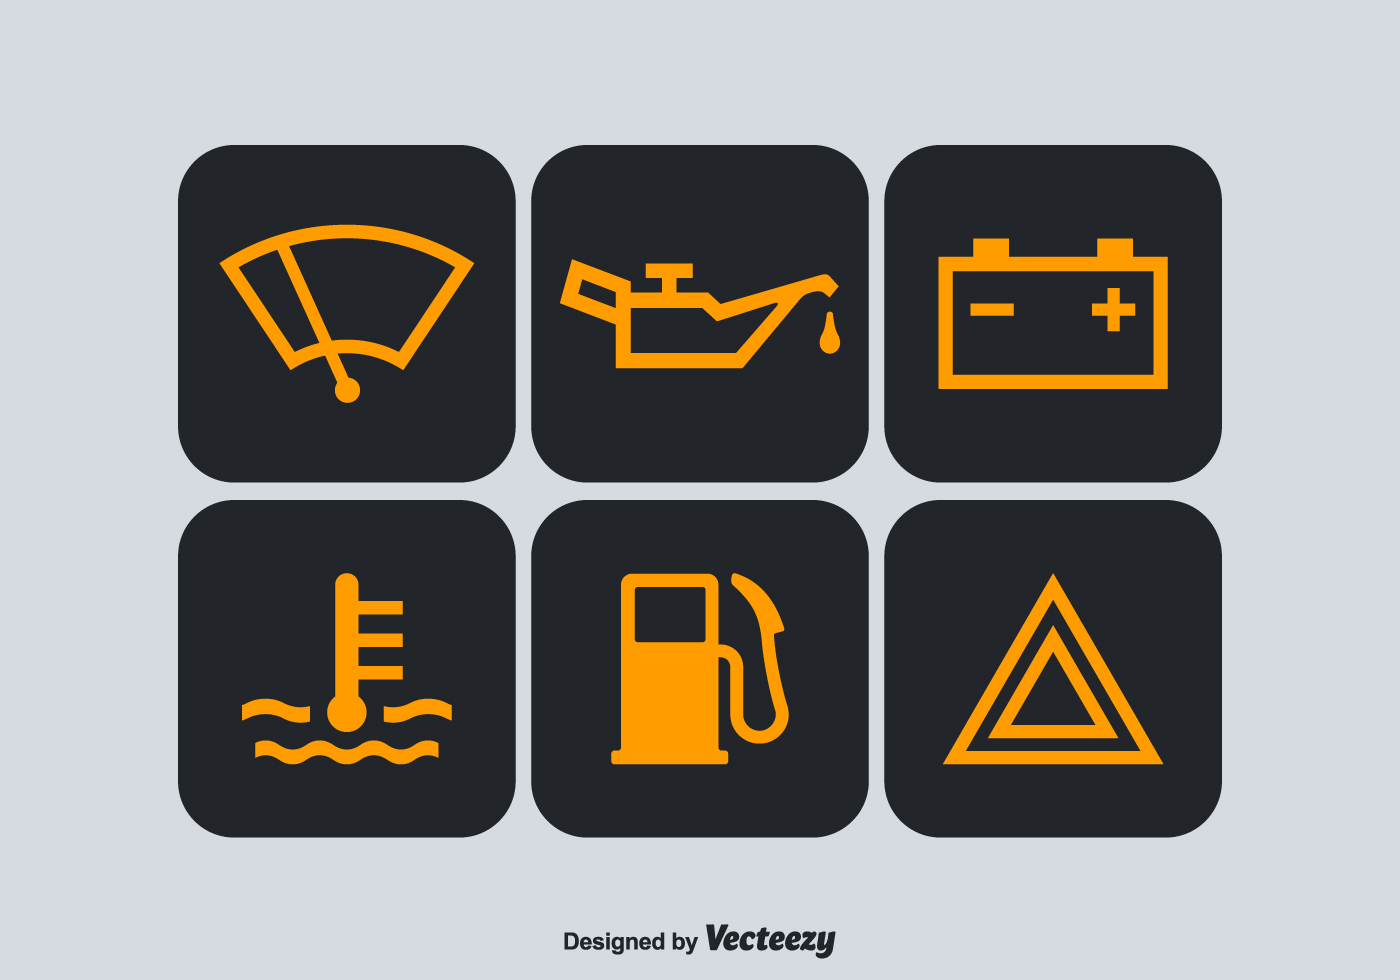 Free Car Dashboard Vector Symbols Download Free Vector Art Stock